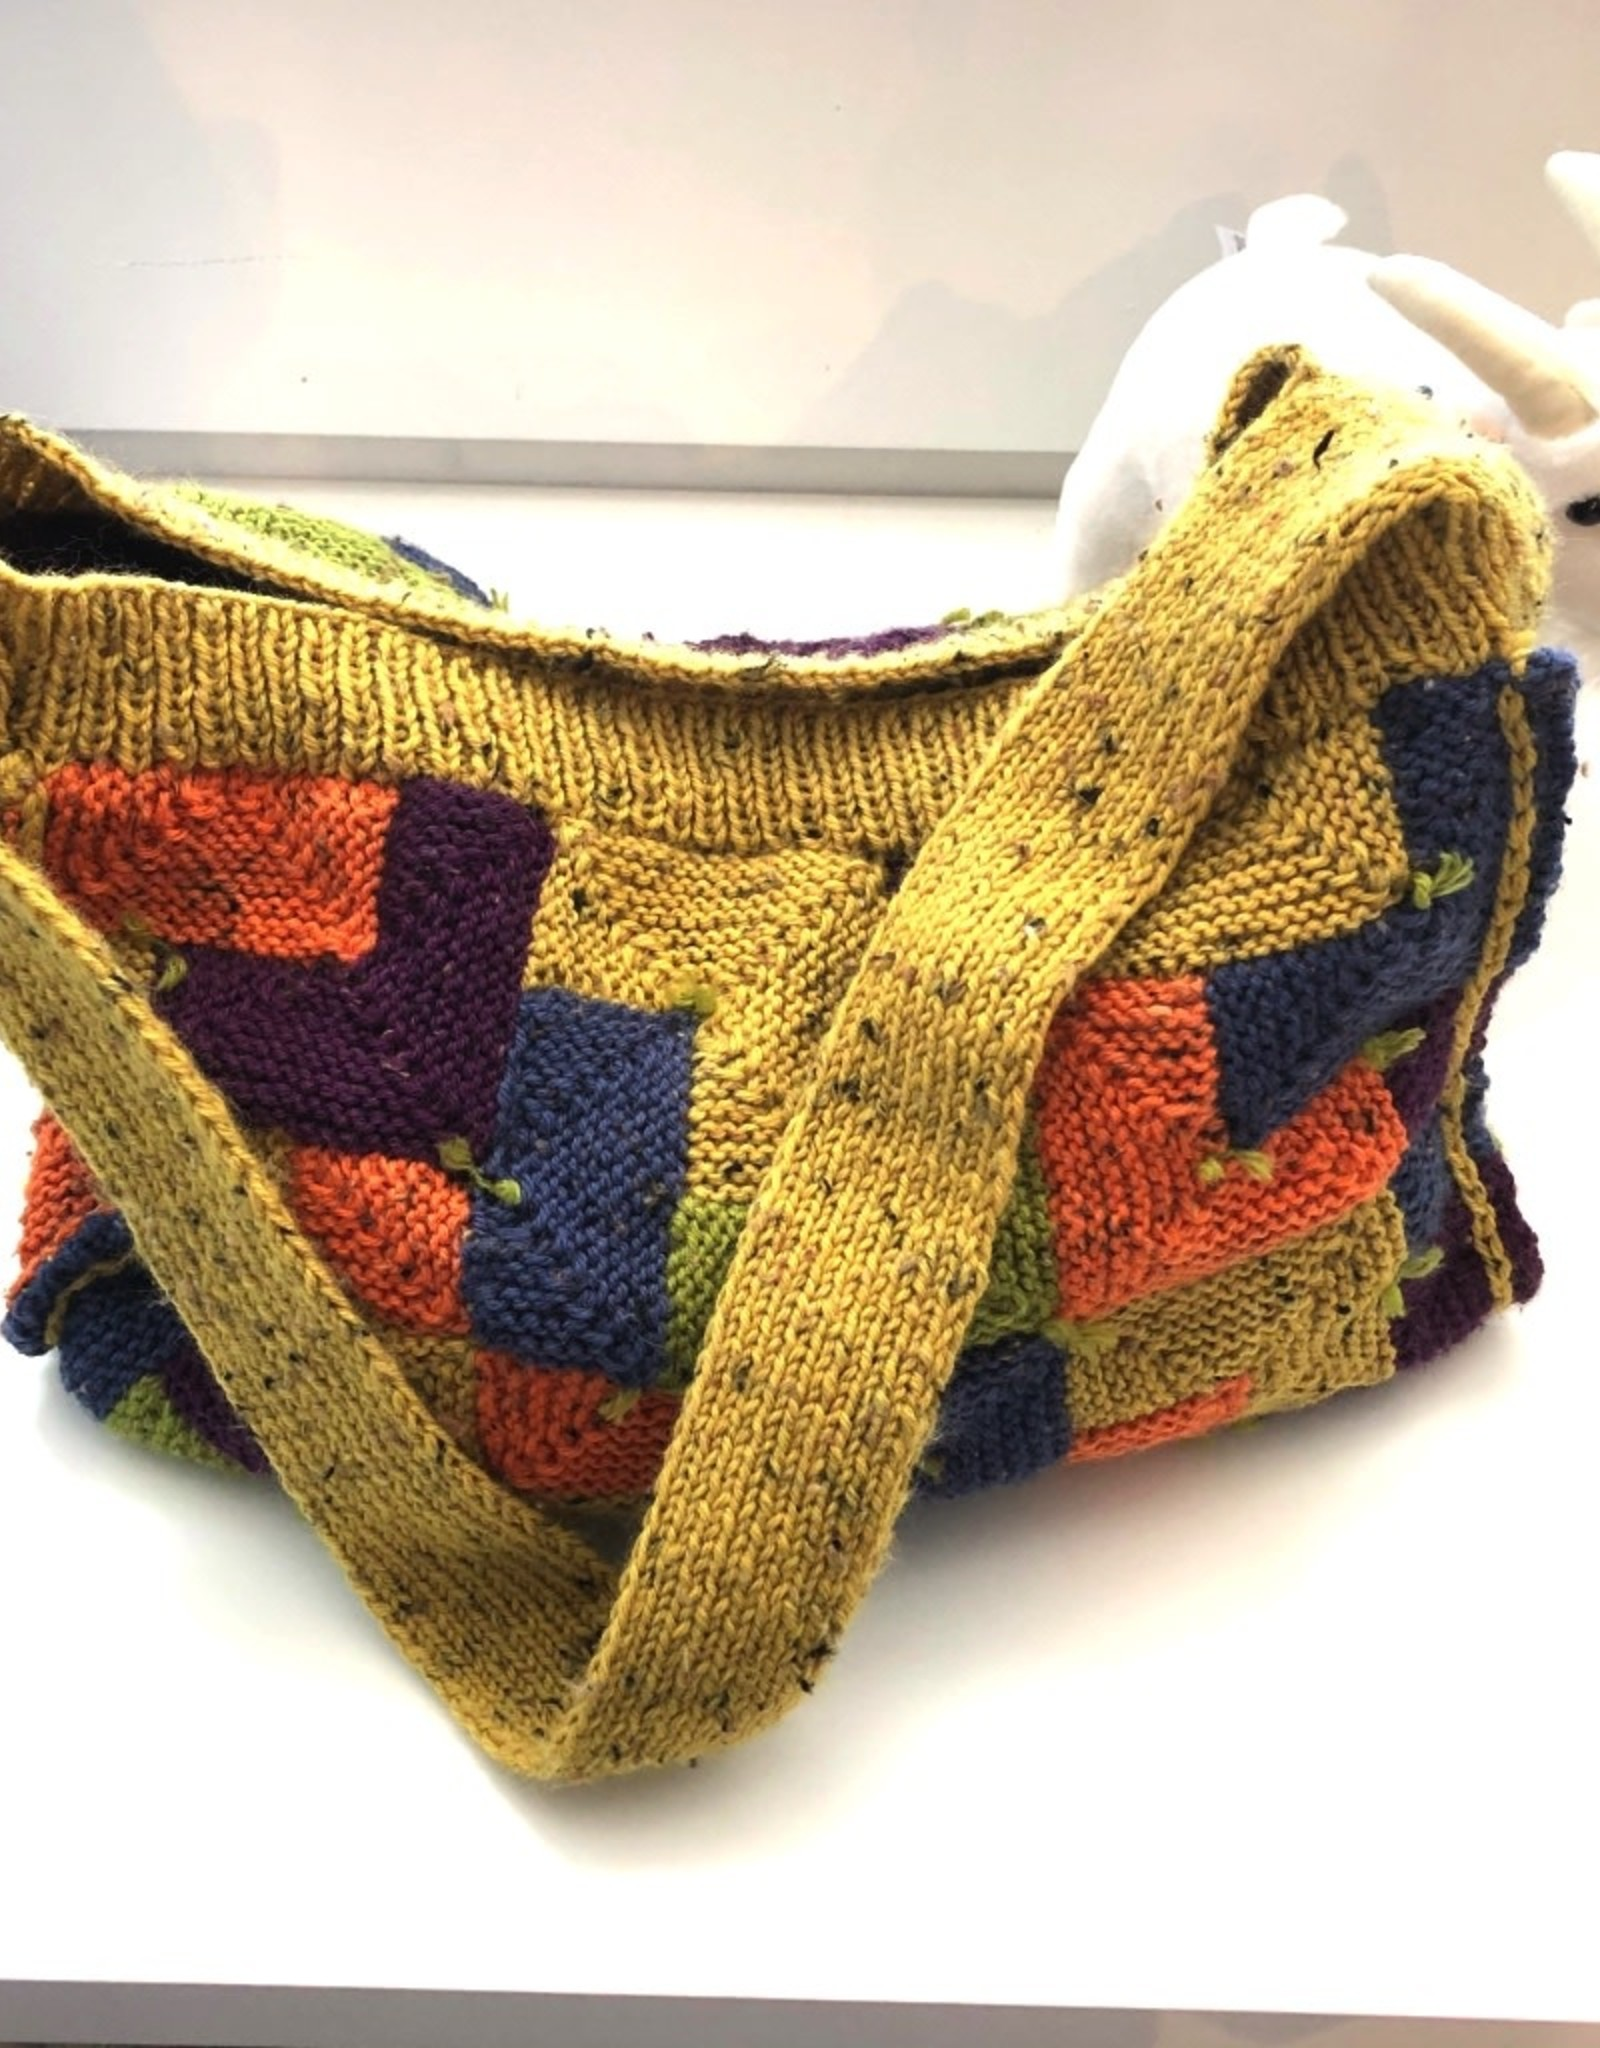 One of a Kind Blocking Knit Bag